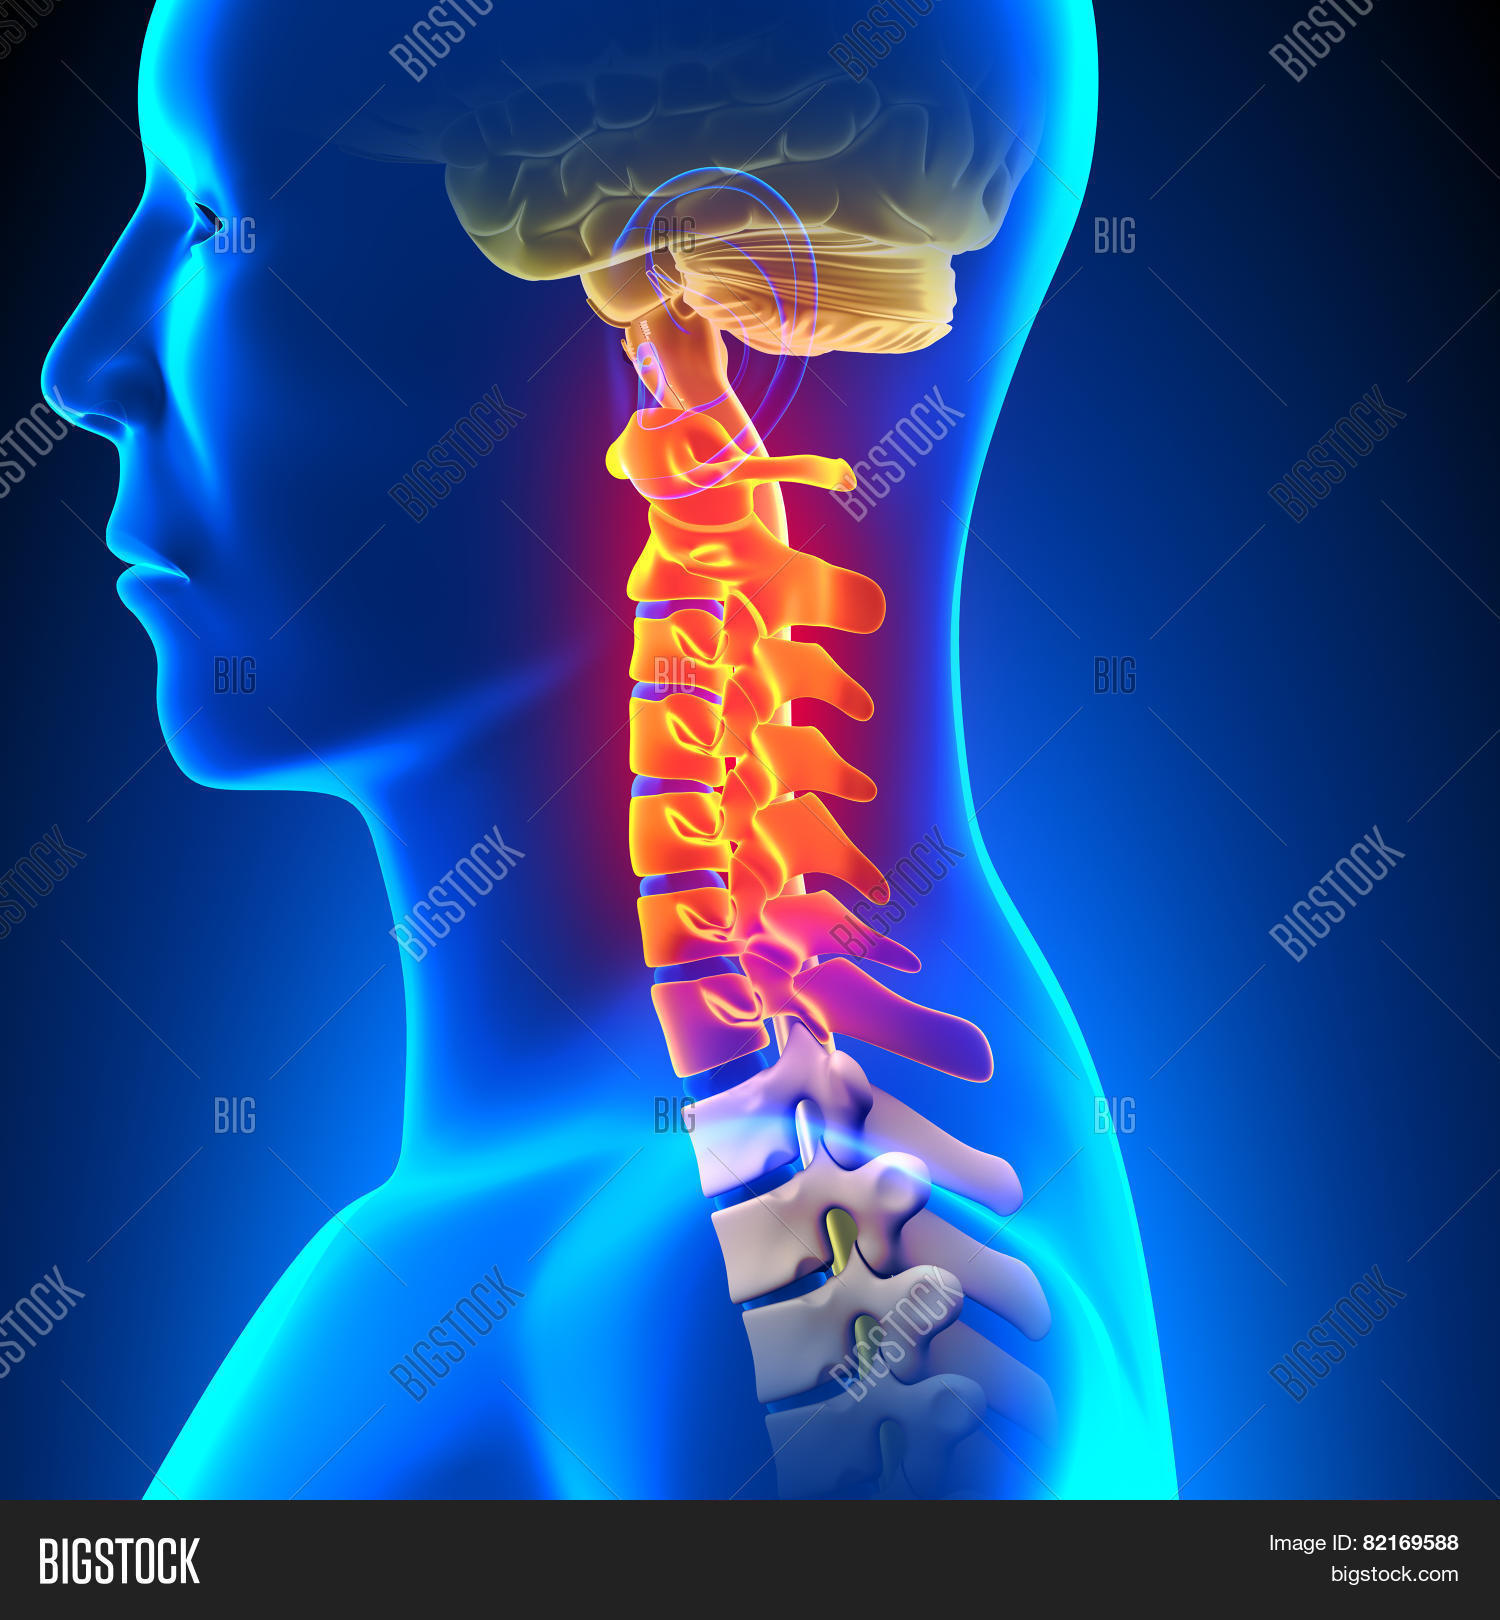 Cervical Spine Anatomy Image & Photo (Free Trial) | Bigstock